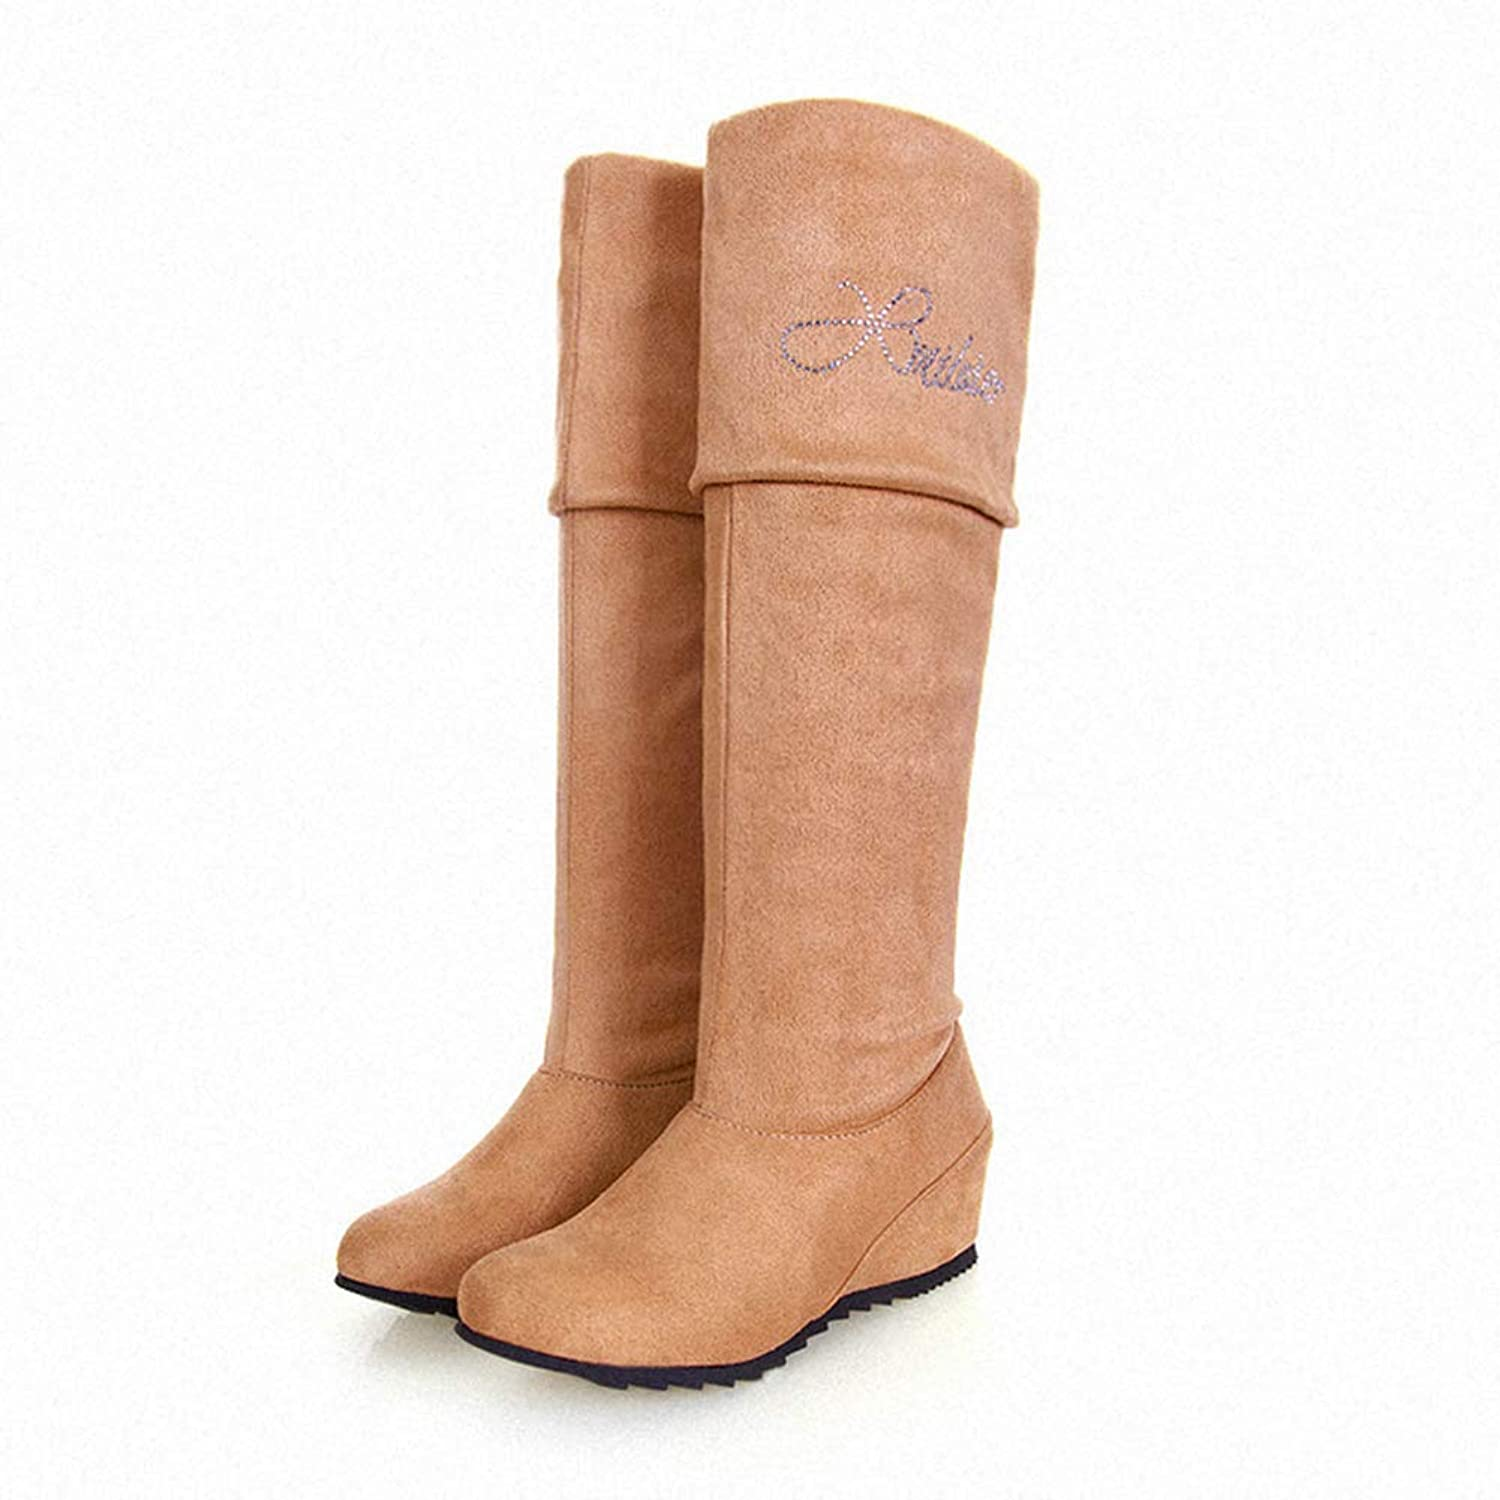 T-JULY Rushed Winter Boots Women women Big Size Long Boots Round Toe Square High Height Increasing Quality